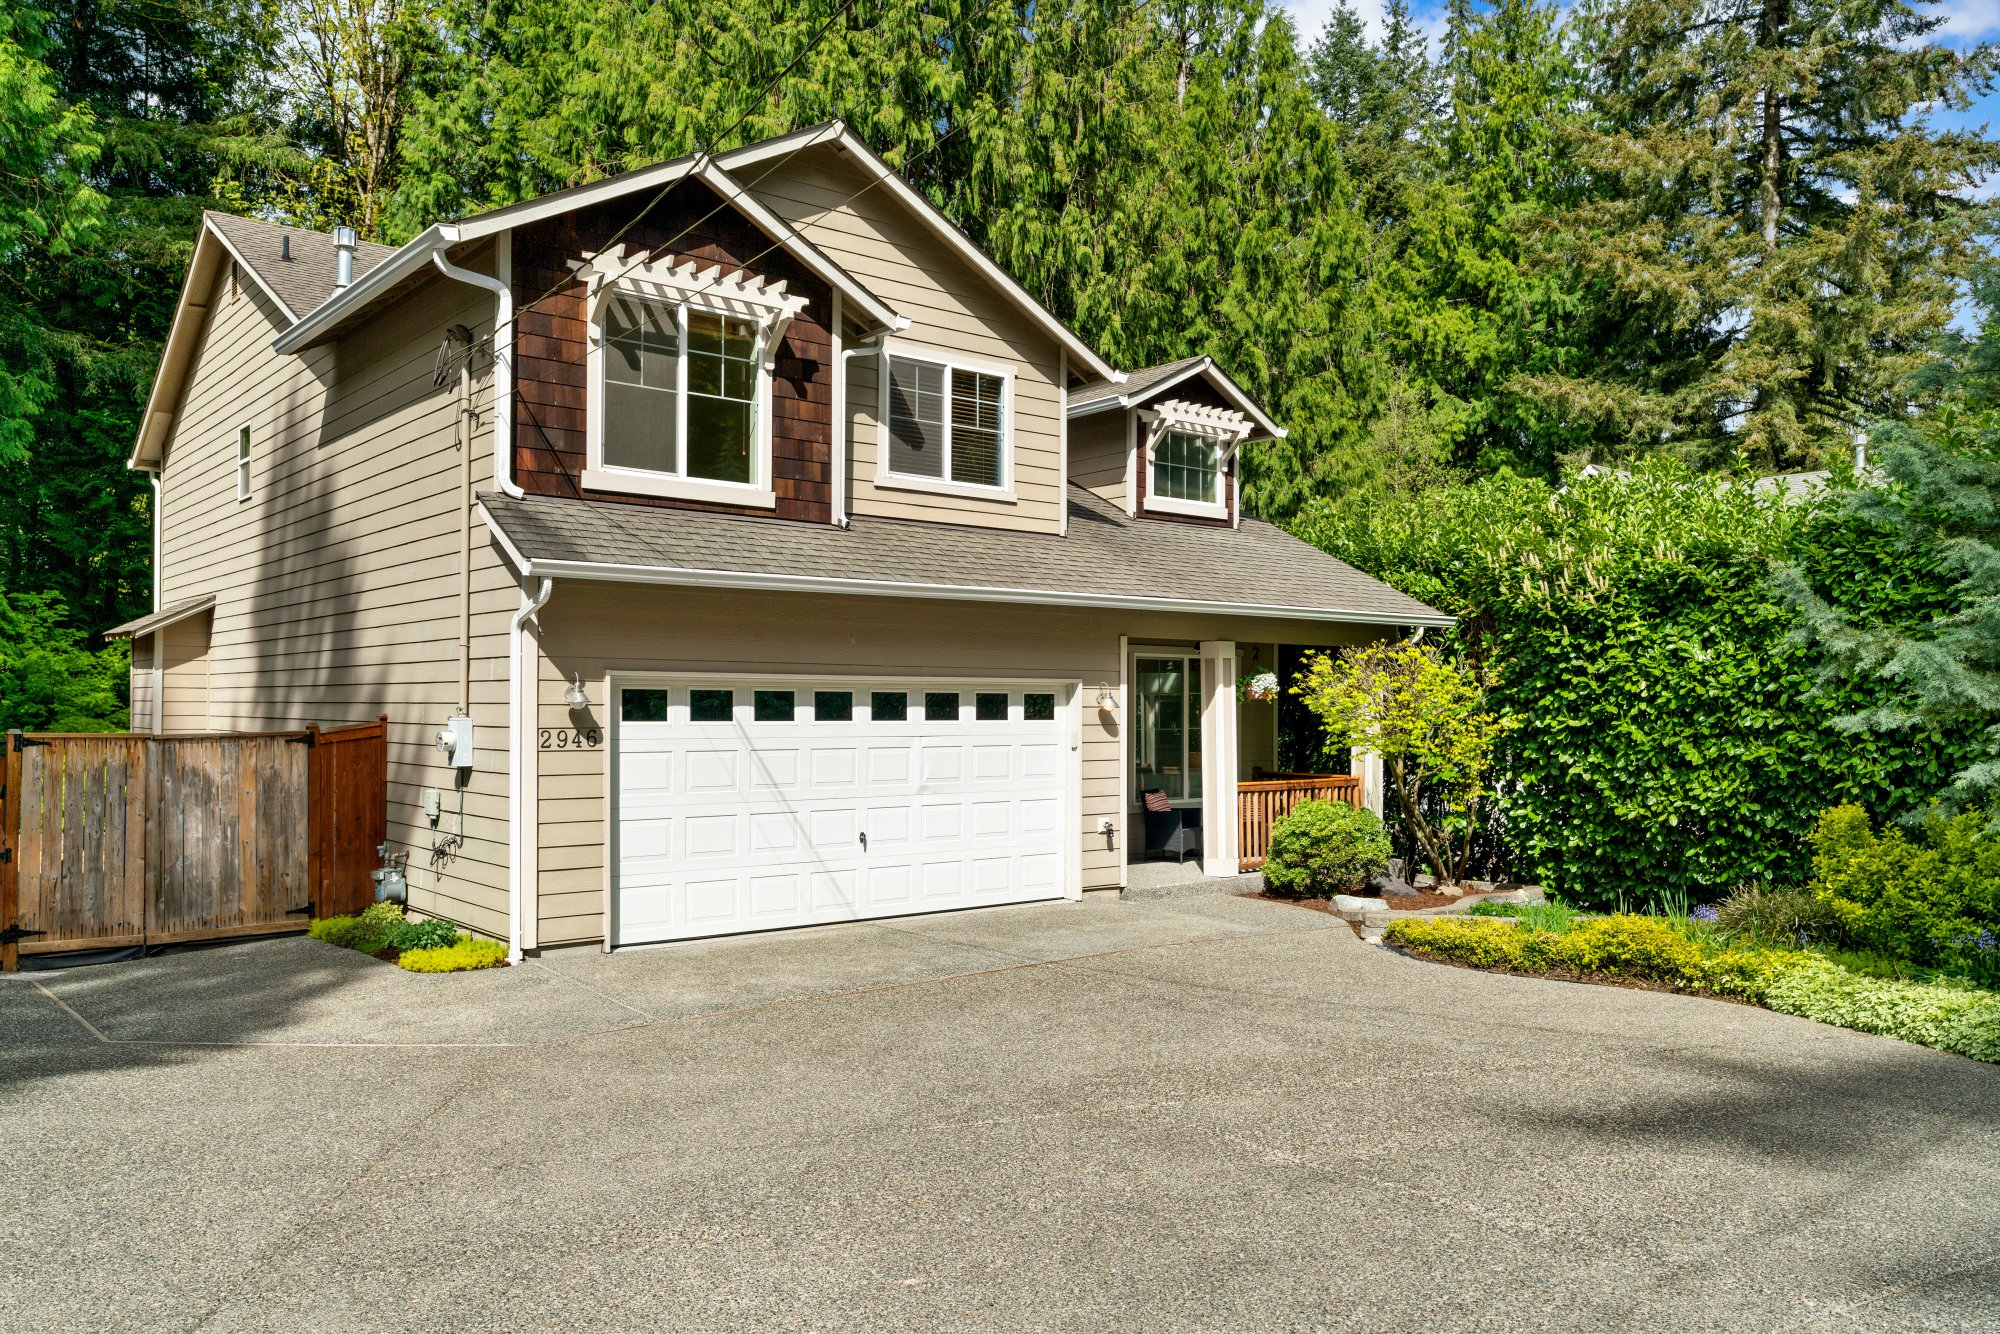 001-2946Northeast178thStreet-LakeForestPark-WA-98155-SMALL